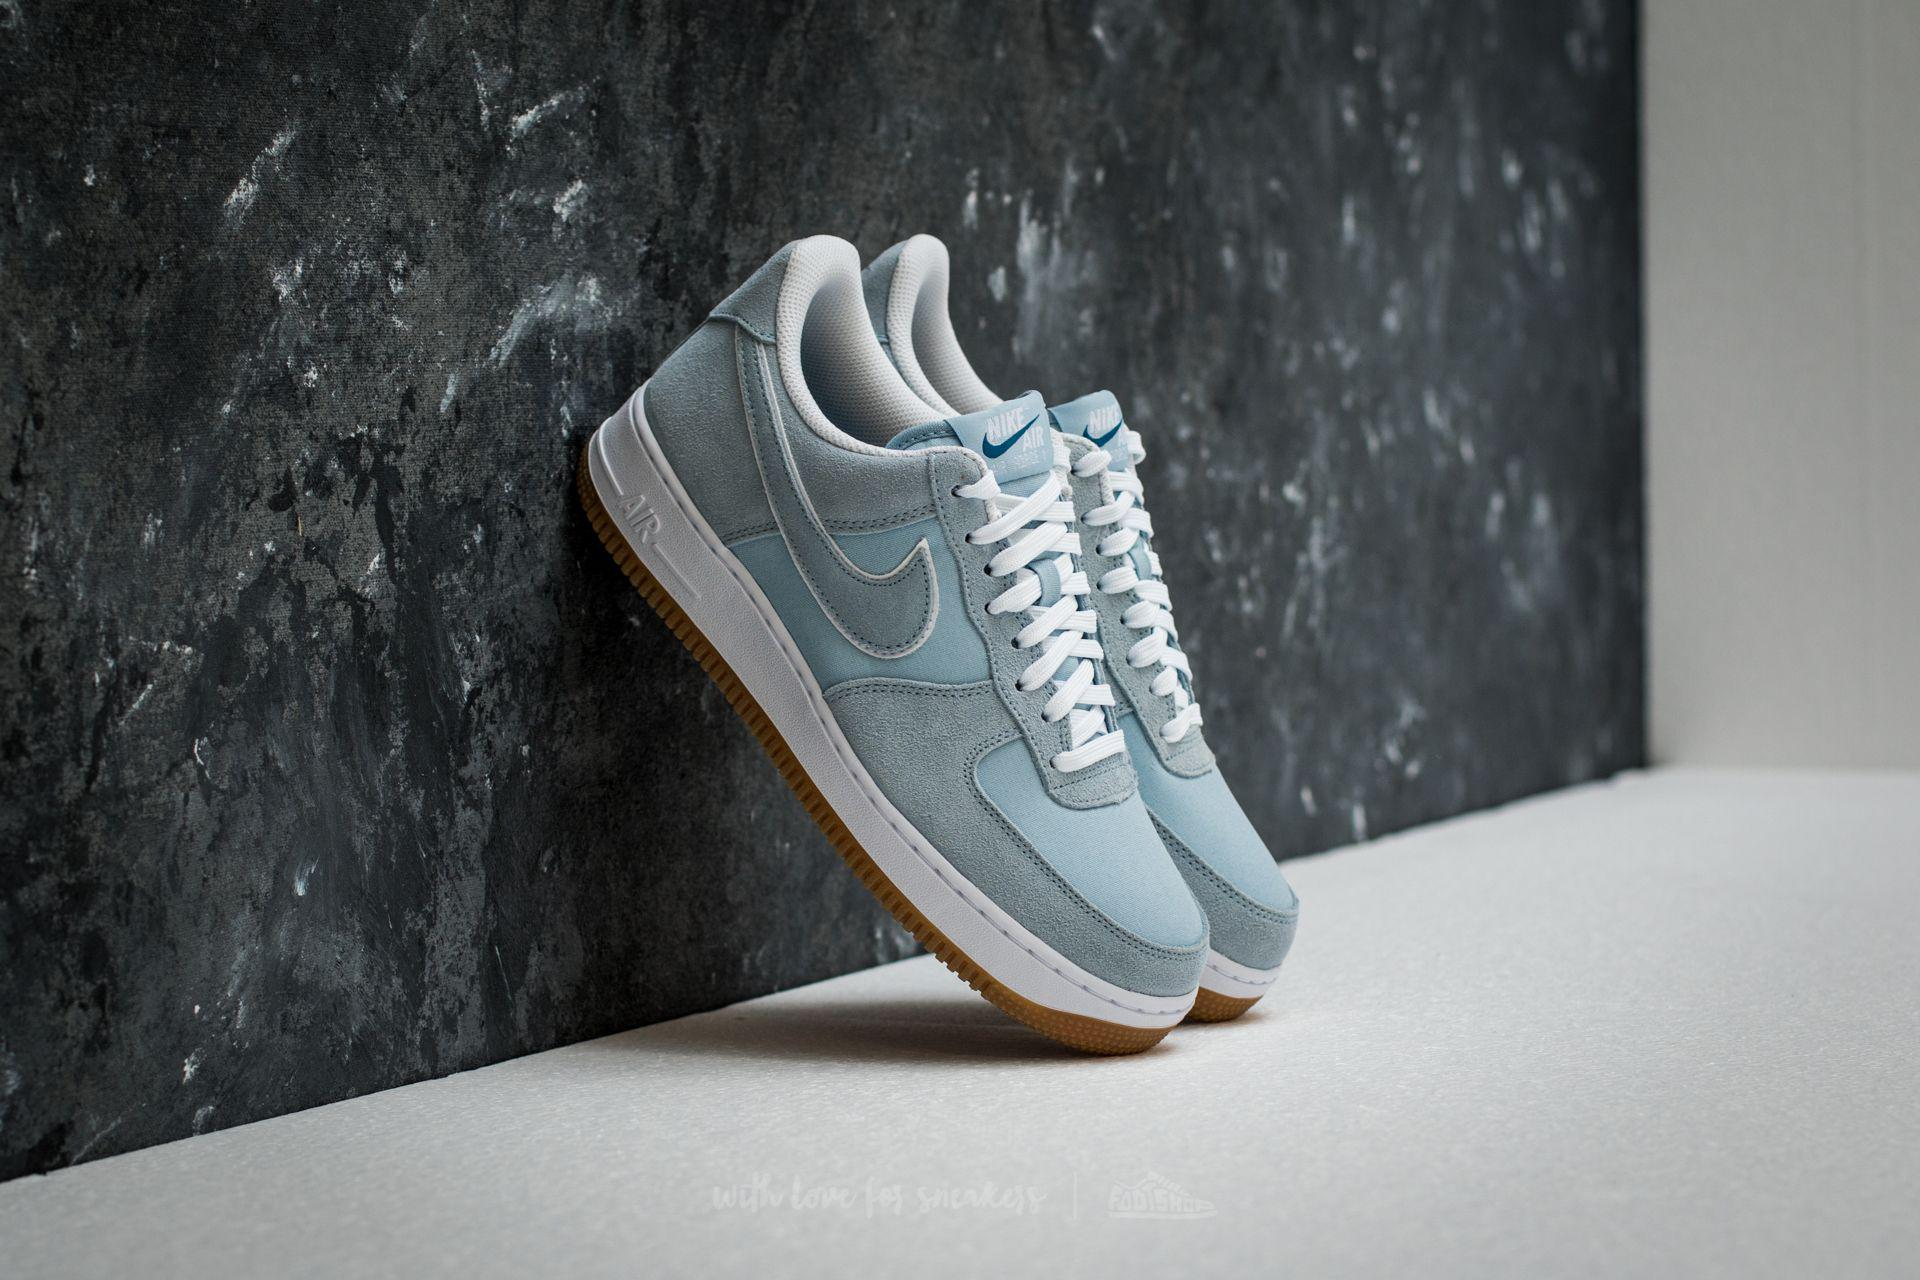 7158b3d36 Gallery. Previously sold at: Footshop · Women's Nike Air Force Sneakers